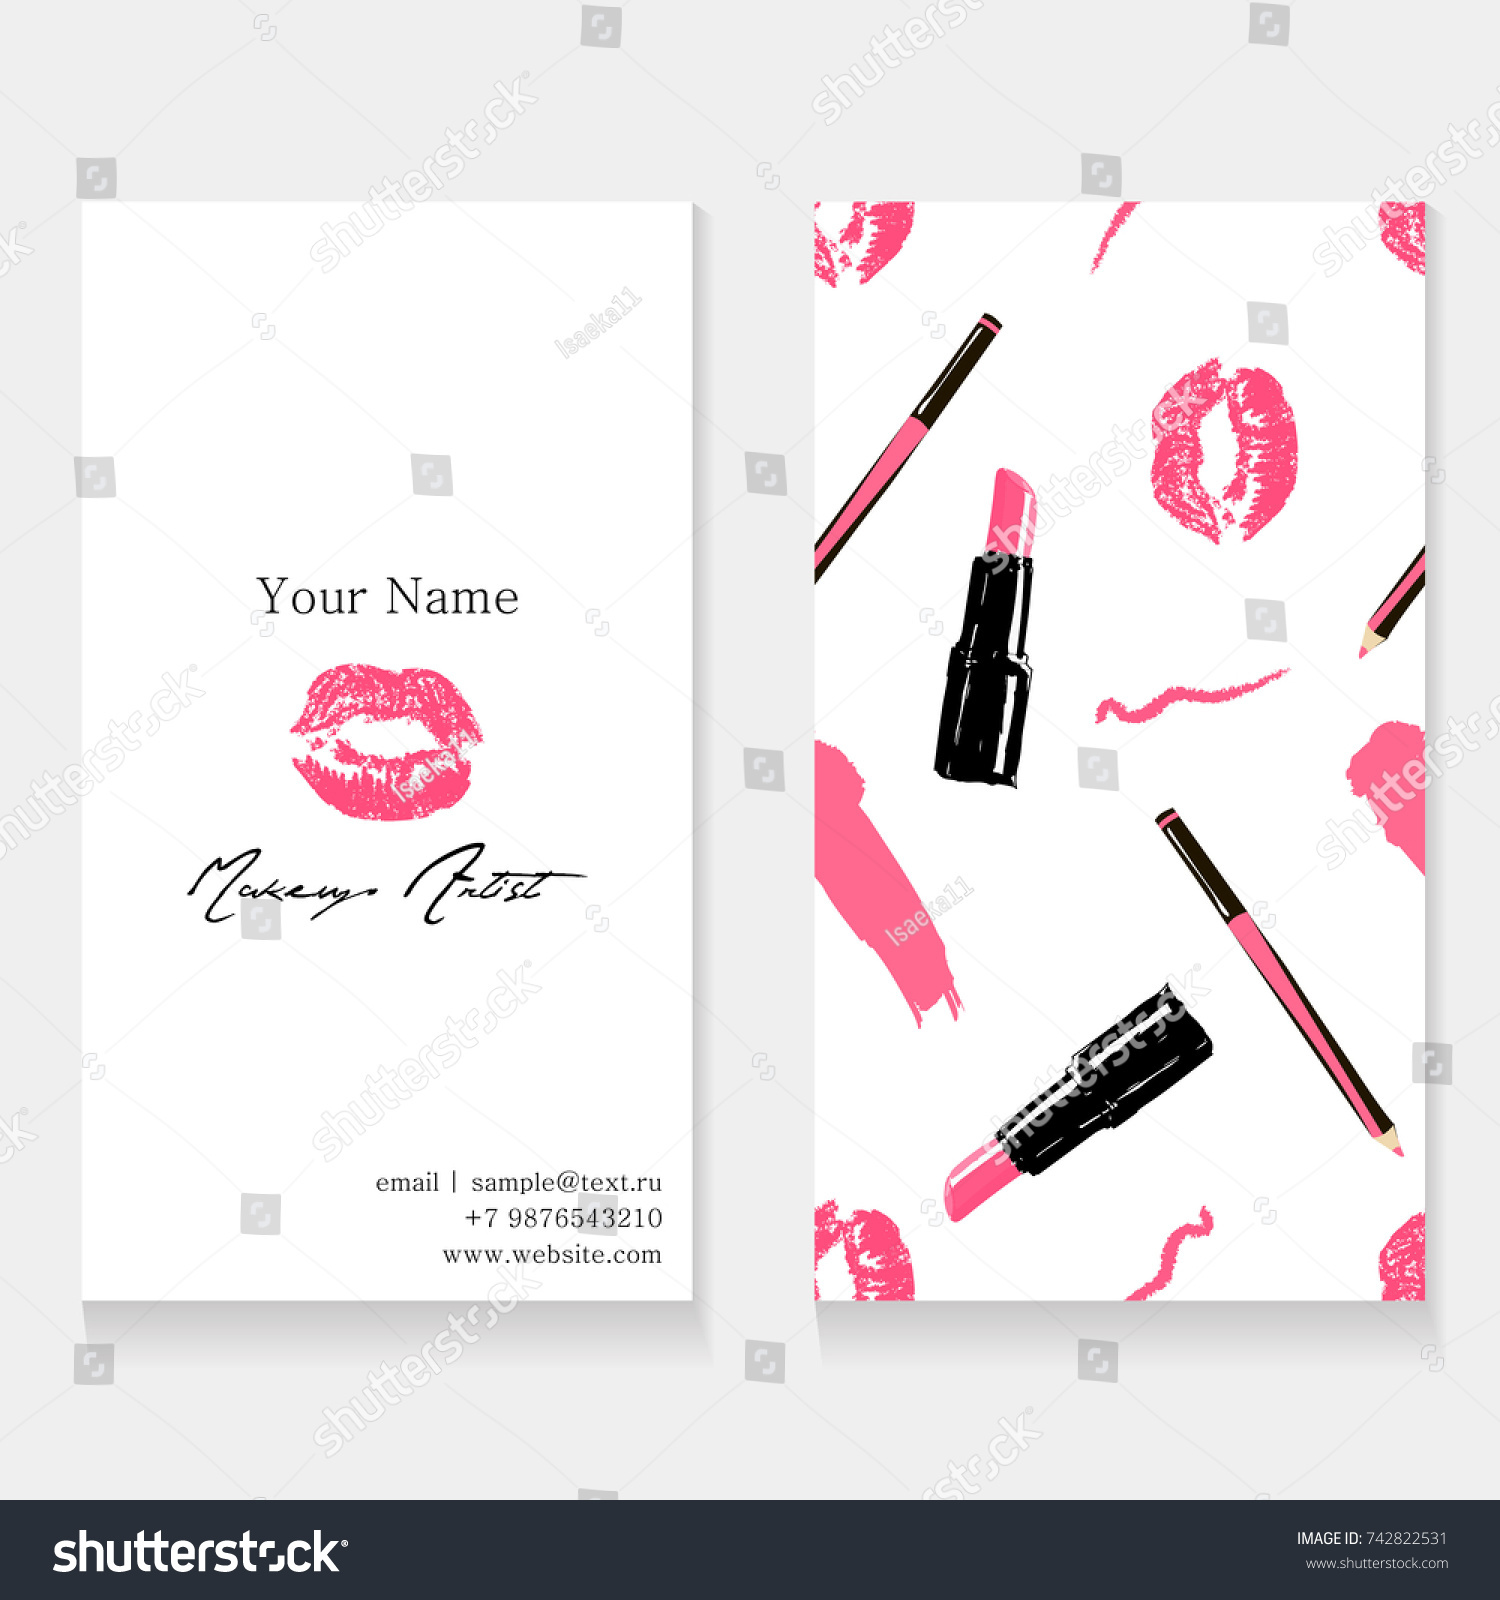 Makeup Artist Business Card Template Cosmetics Stock Vector ...